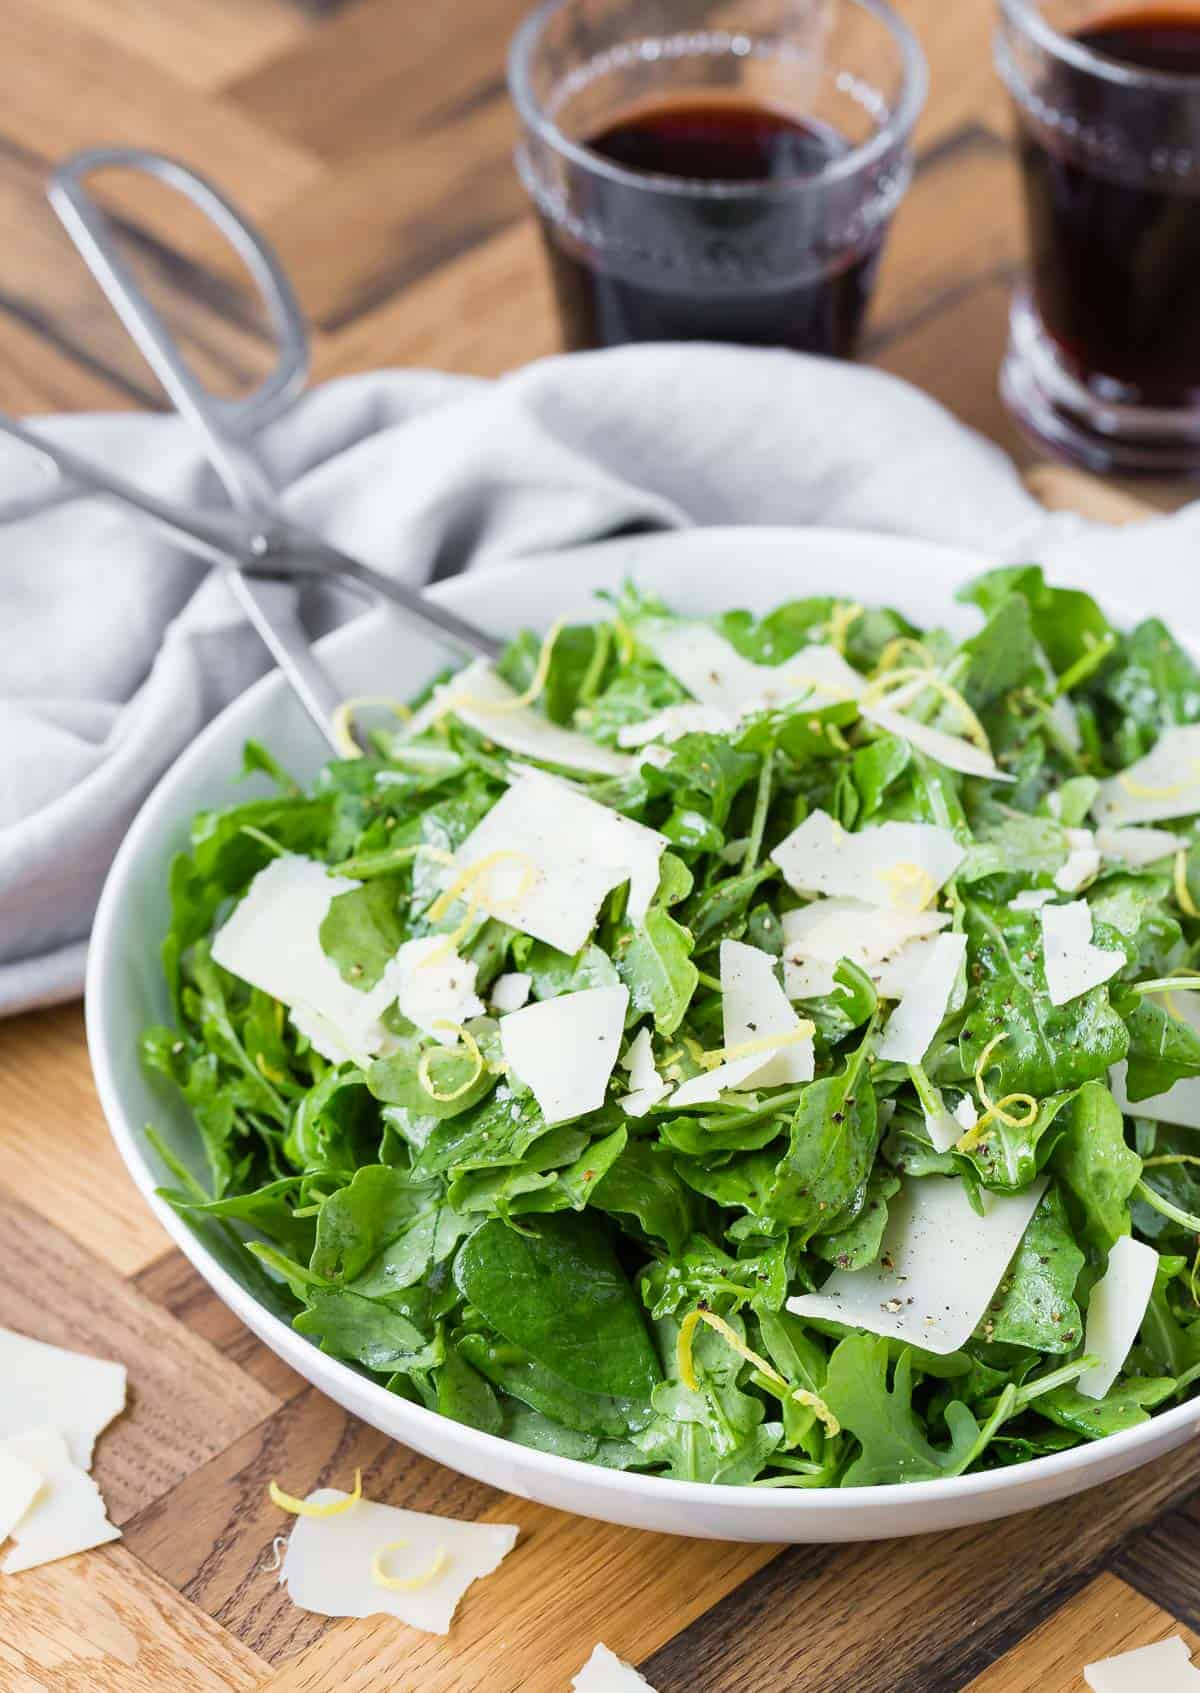 A simple and classic arugula salad in a white bowl with silver tongs in it.